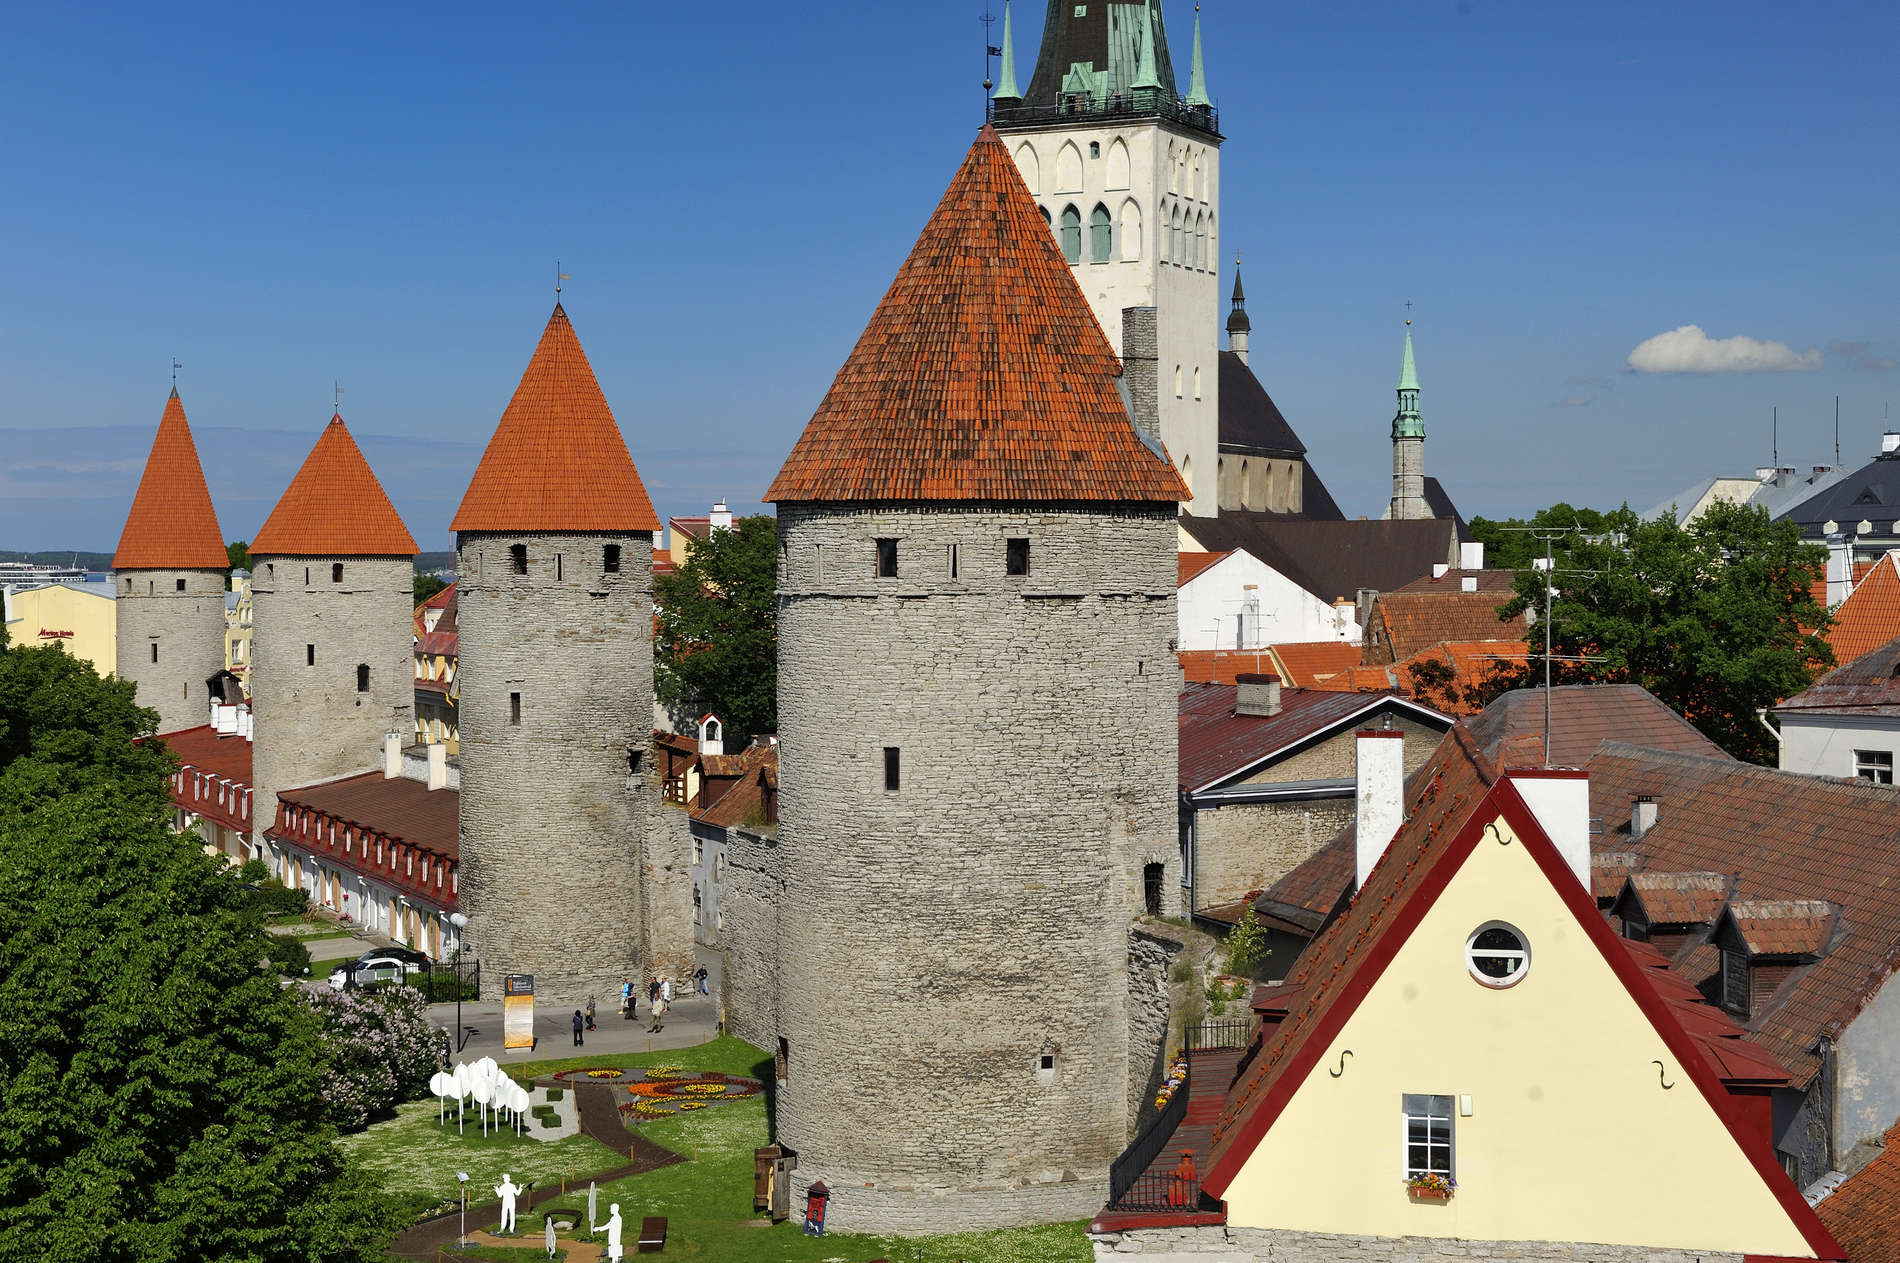 View to the Town Wall and the Towers in Tallinn, Estonia.